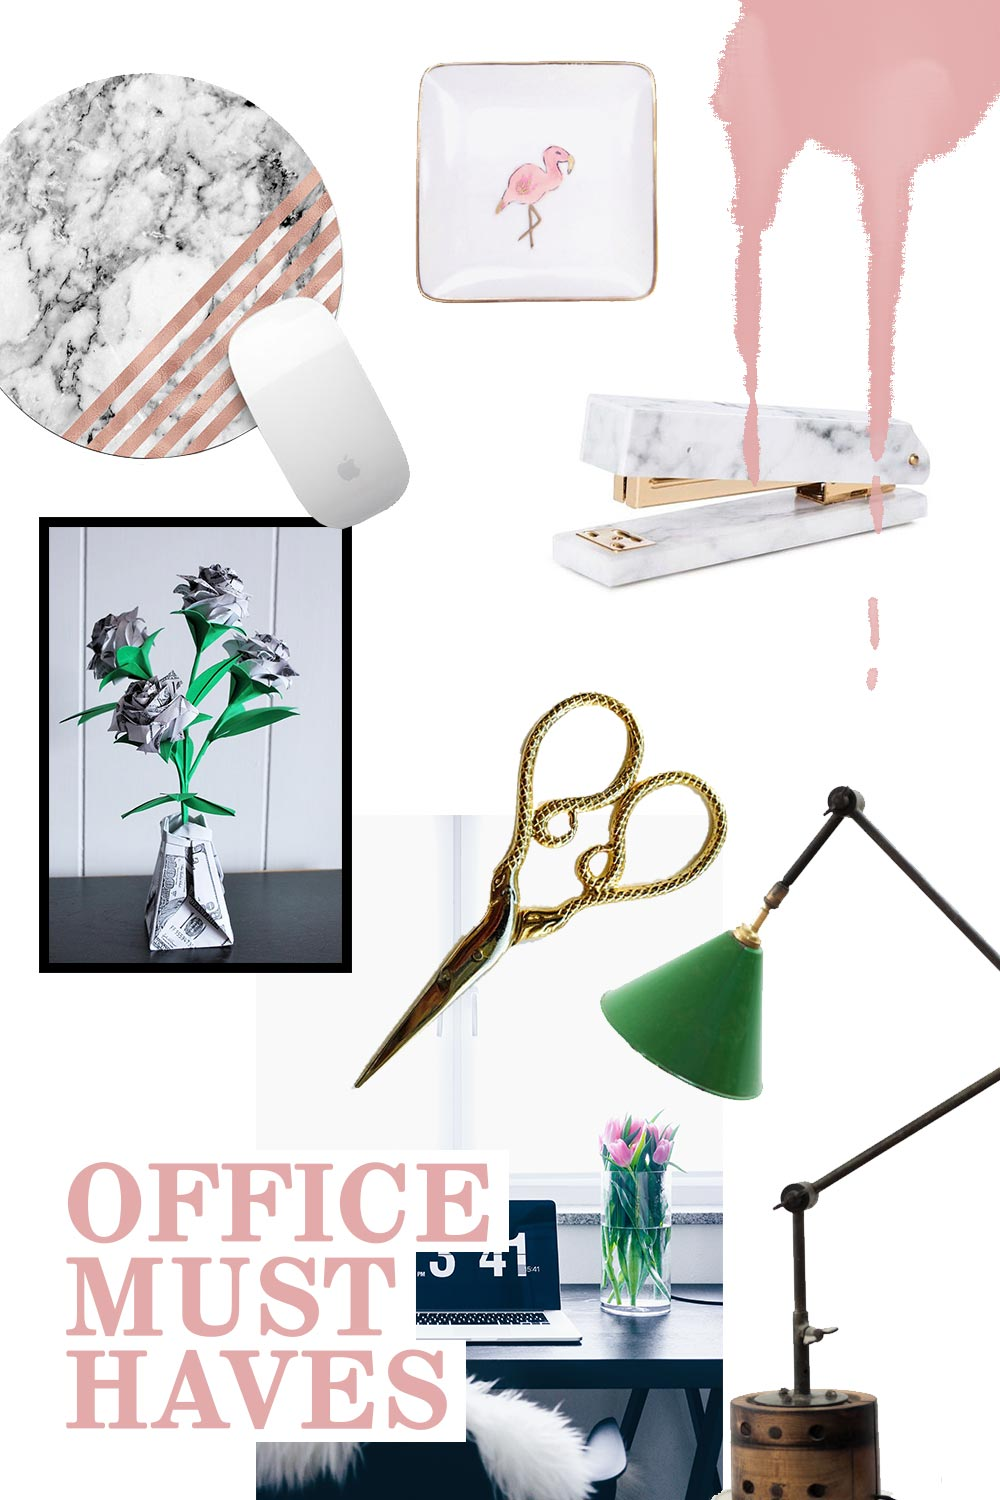 Office Must Haves, Home Office Stationary, Office IT Pieces, Etsy Picks, Interior Blog, Interior Magazin, www.whoismocca.com